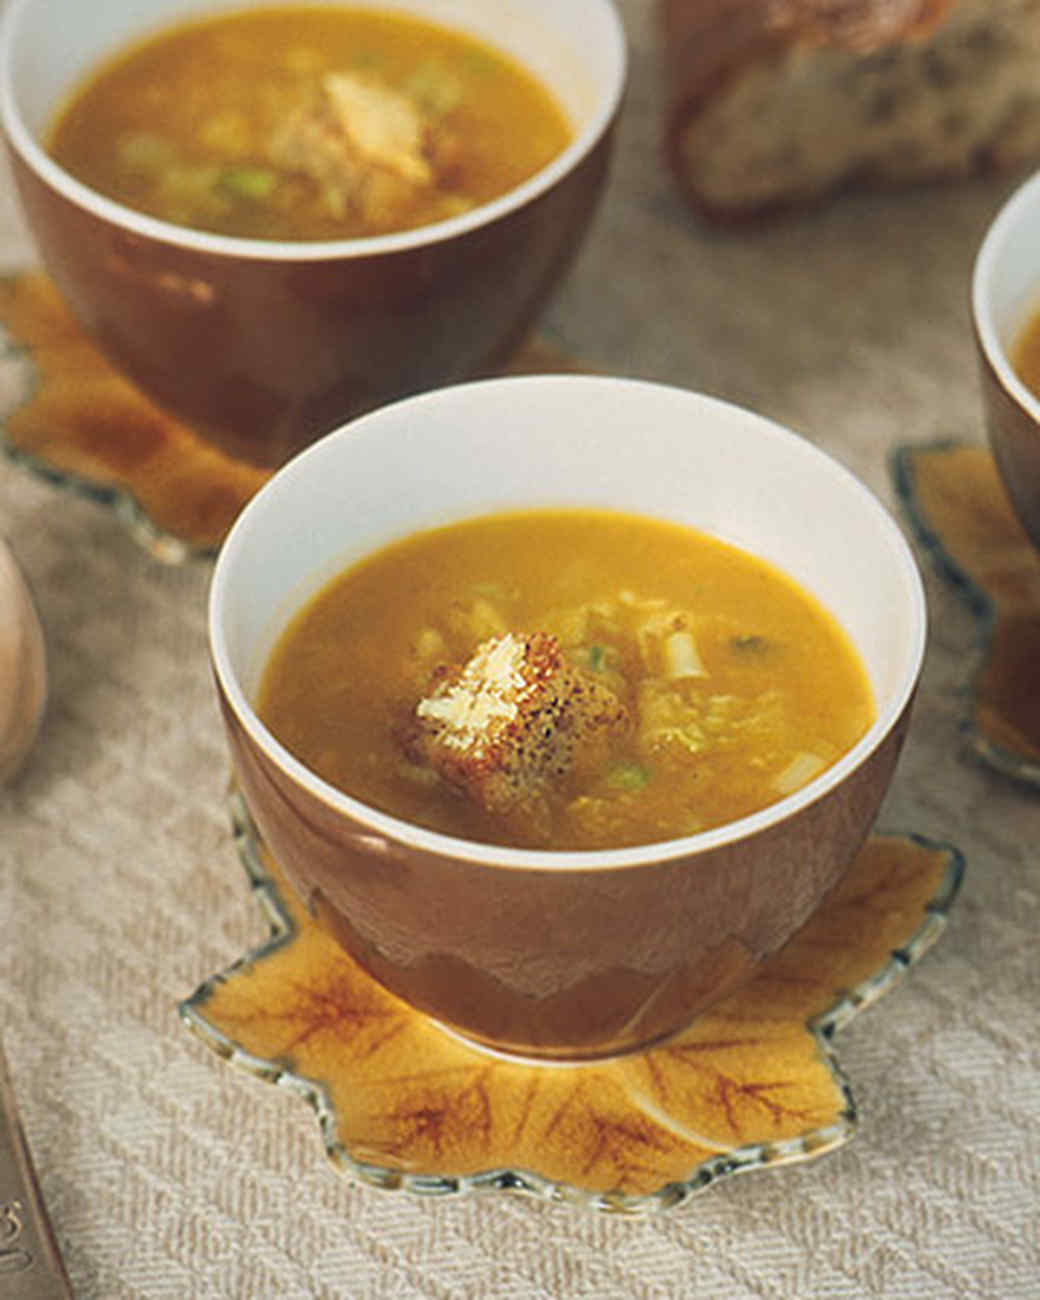 Watch Butternut Squash Soup with Herb Croutons Recipe video